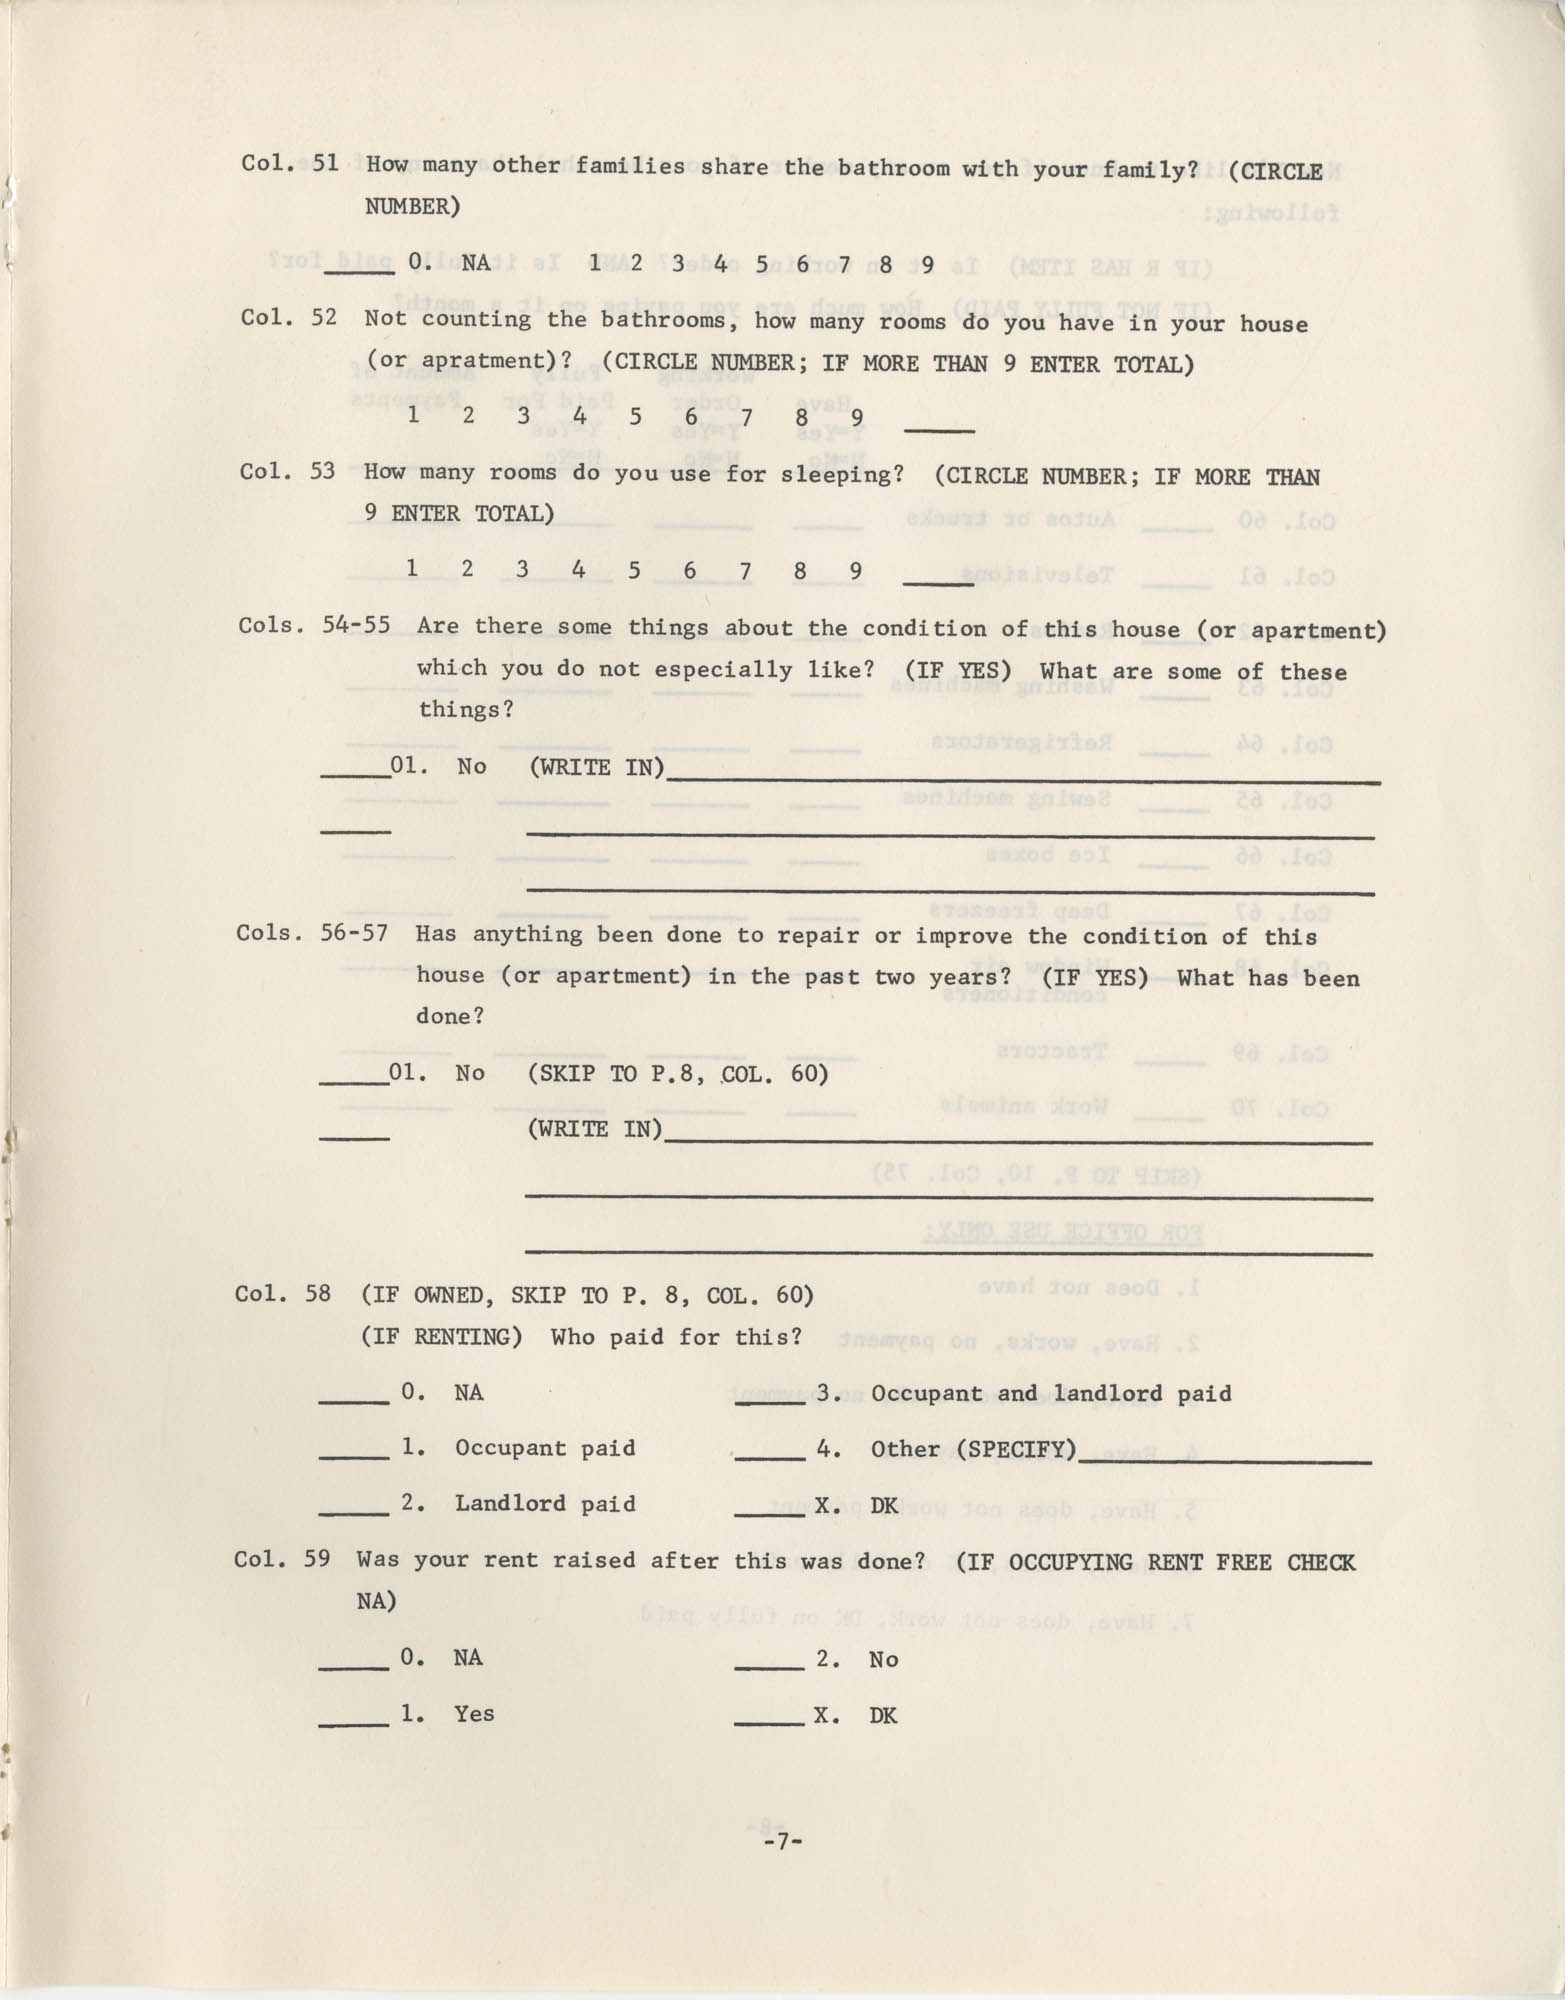 Household Questionnaire, Page 7